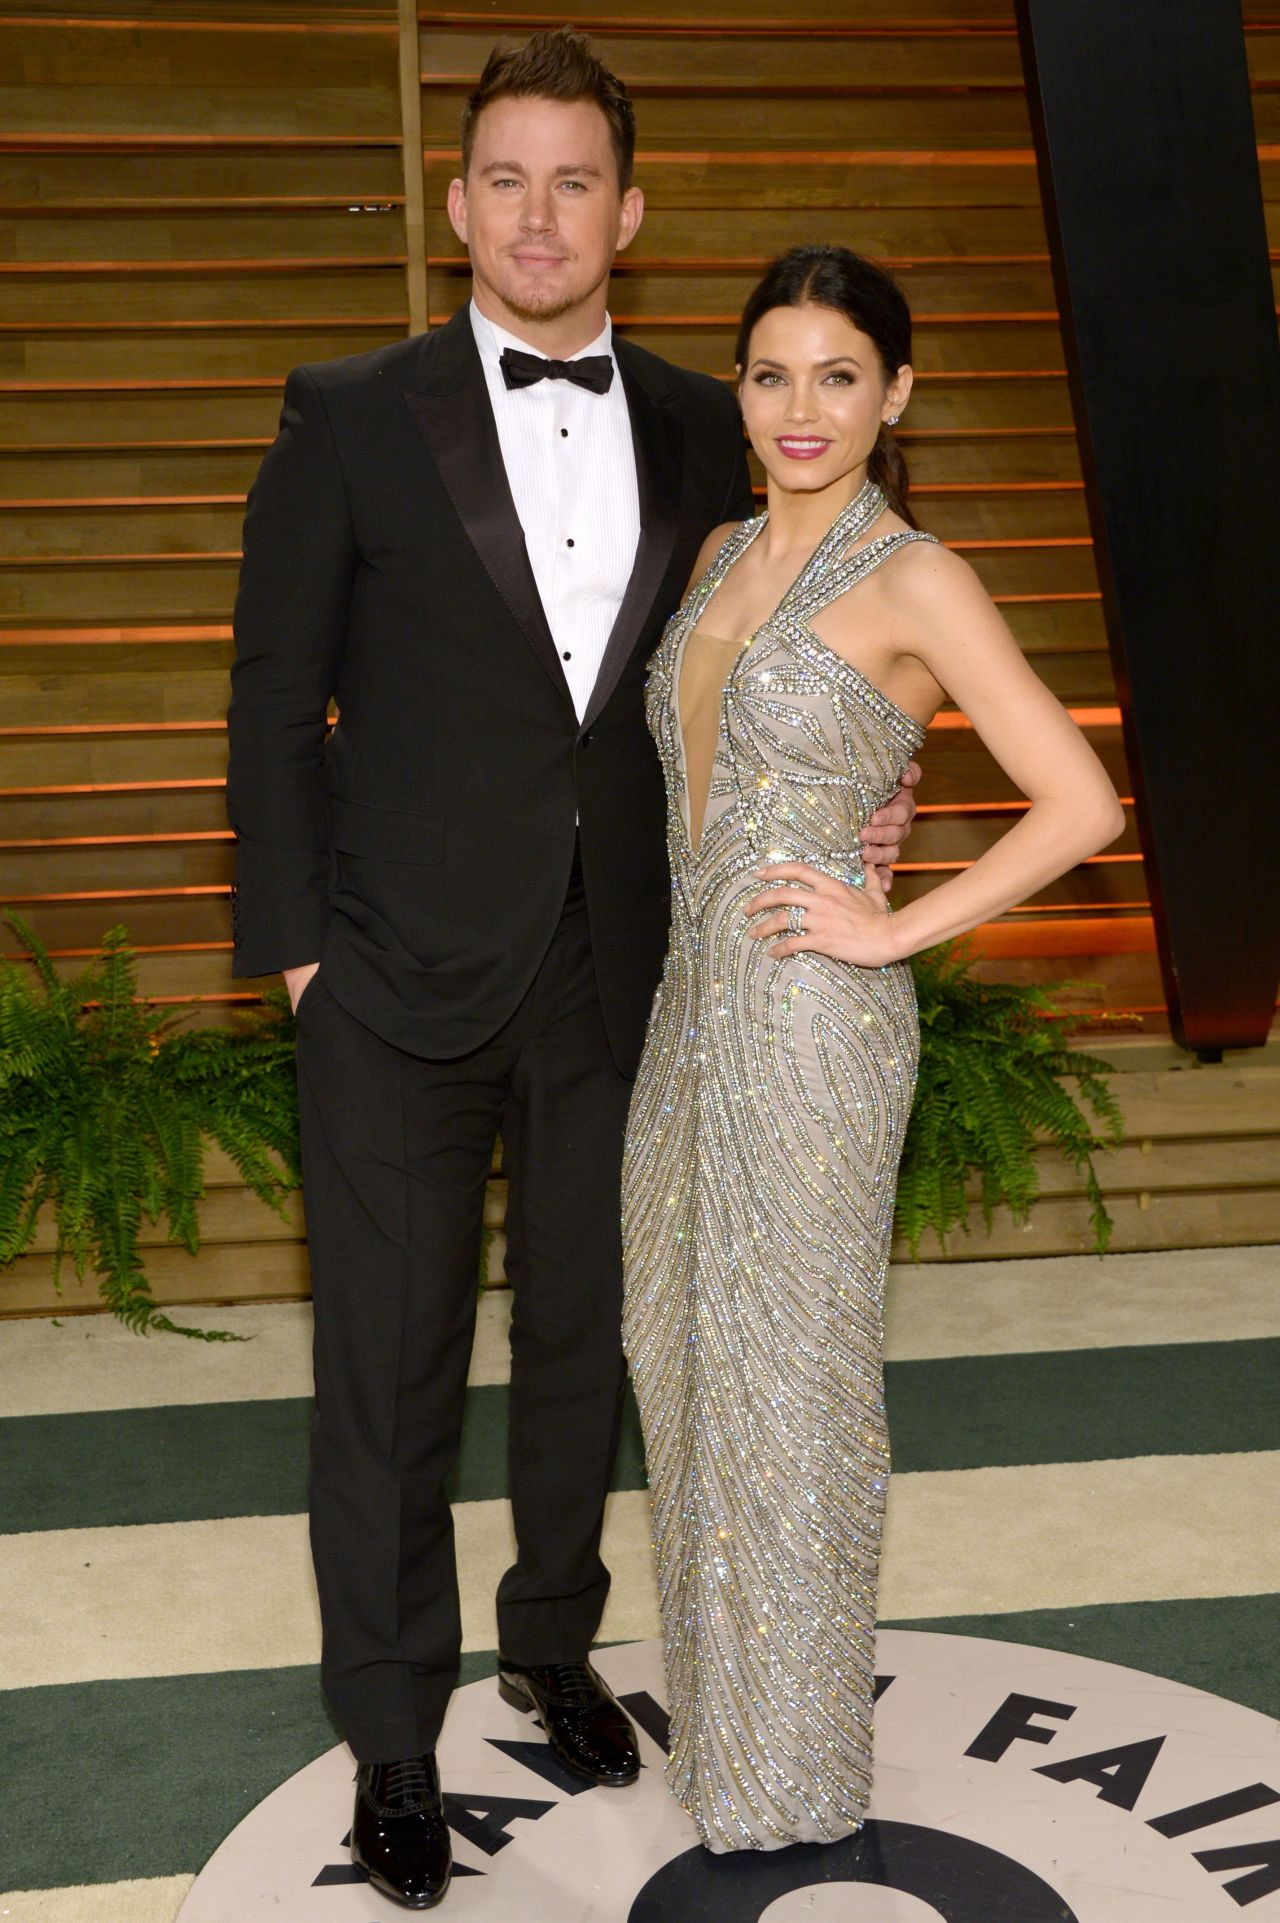 Jenna Dewan - Vanity Fair Oscar Party in Holywood, March 2014